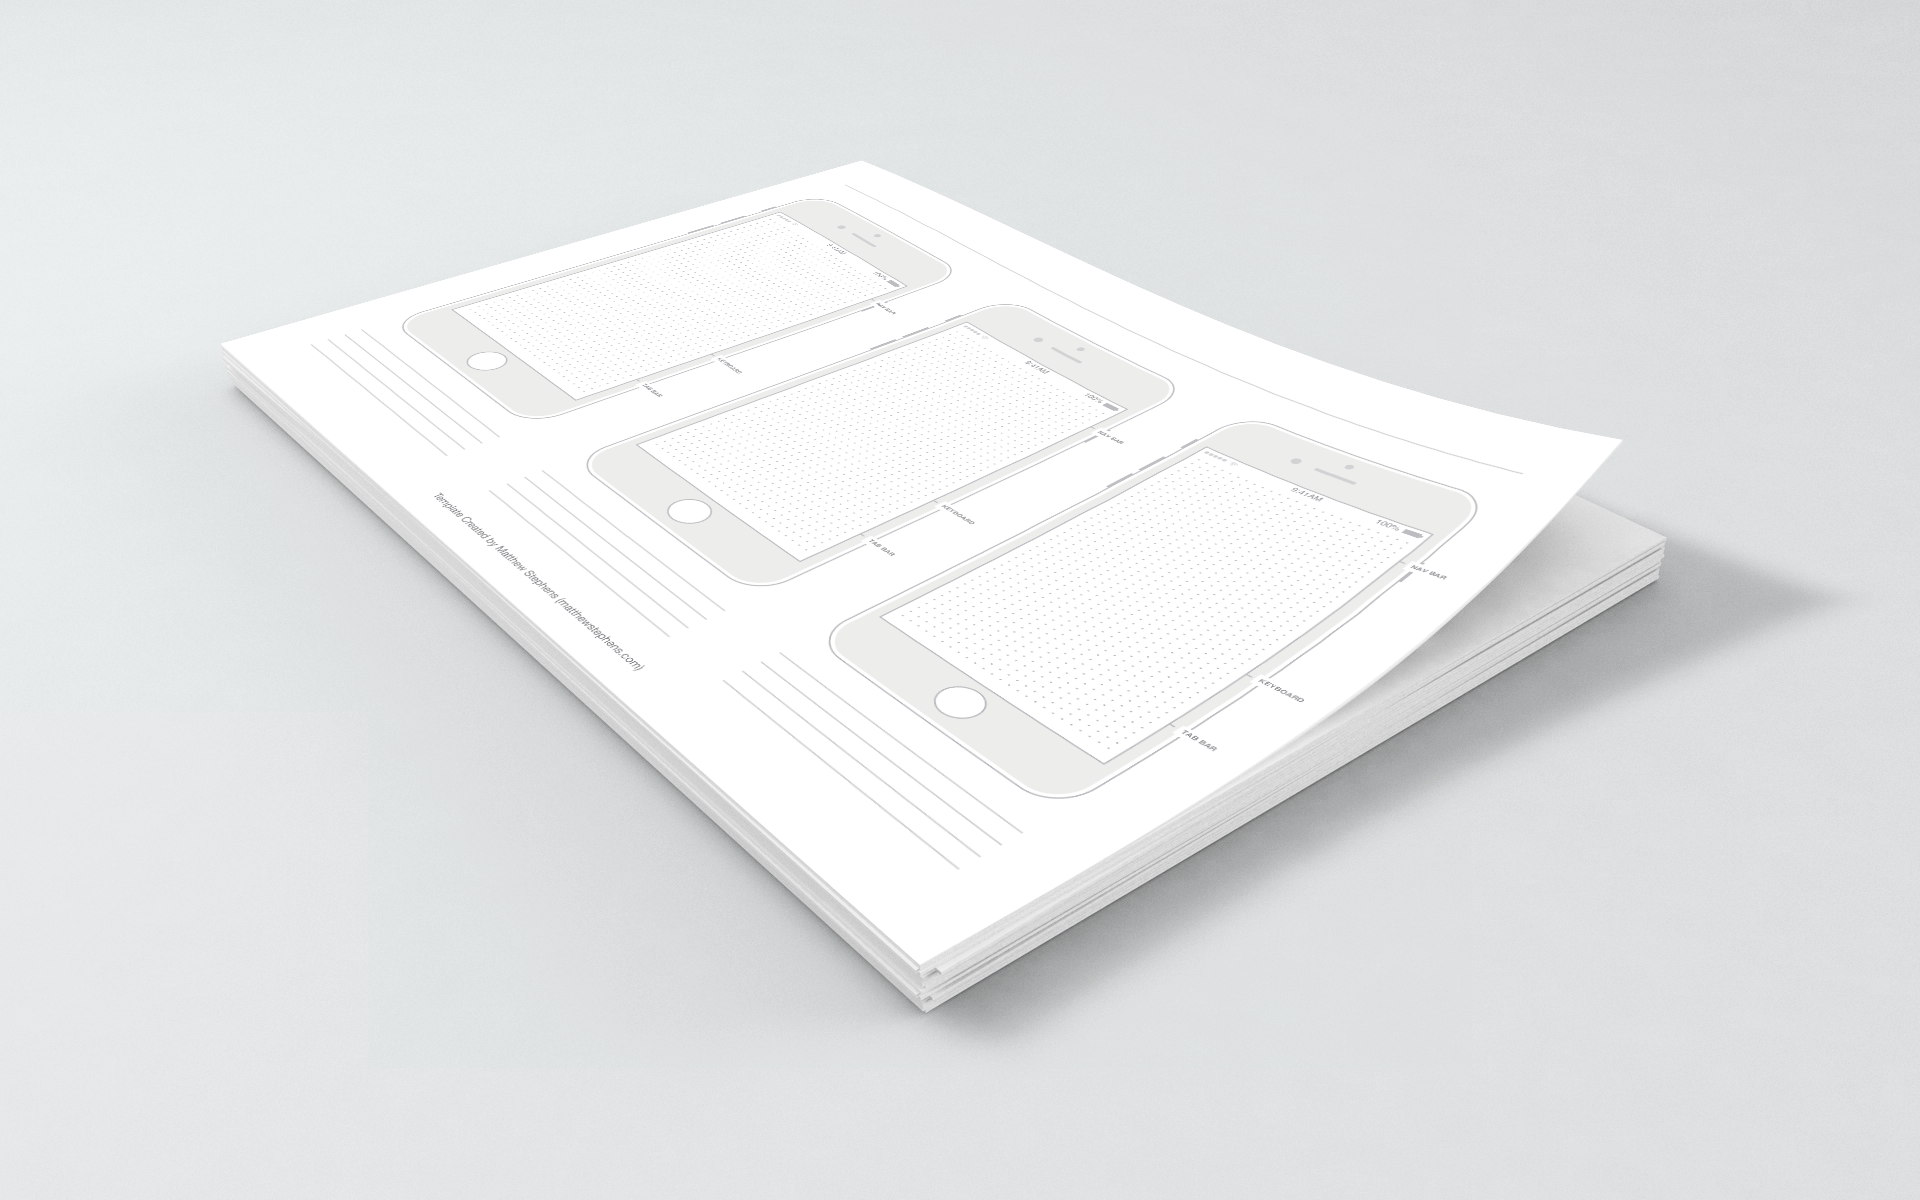 Free iPhone 7 Template for iOS 10 in PDF for UI Designers